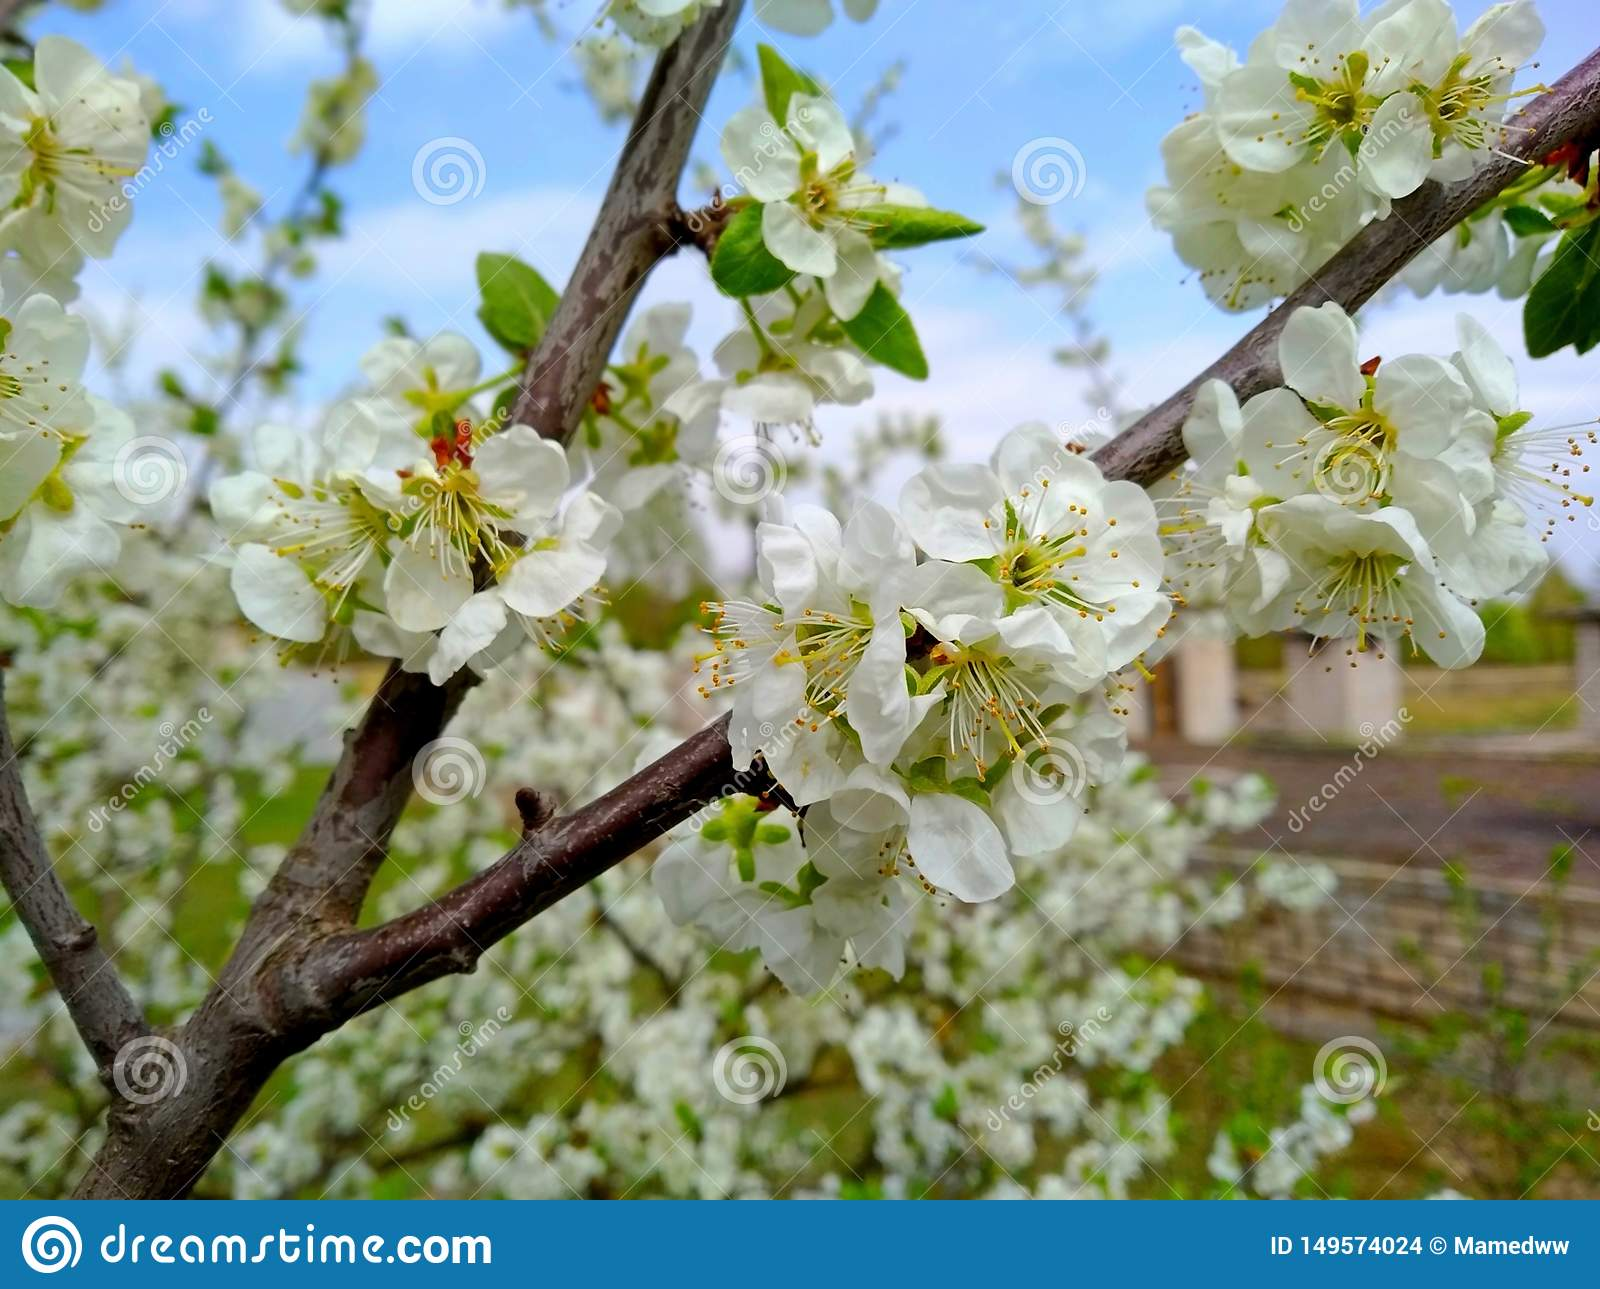 Sherry tree blossoms spring